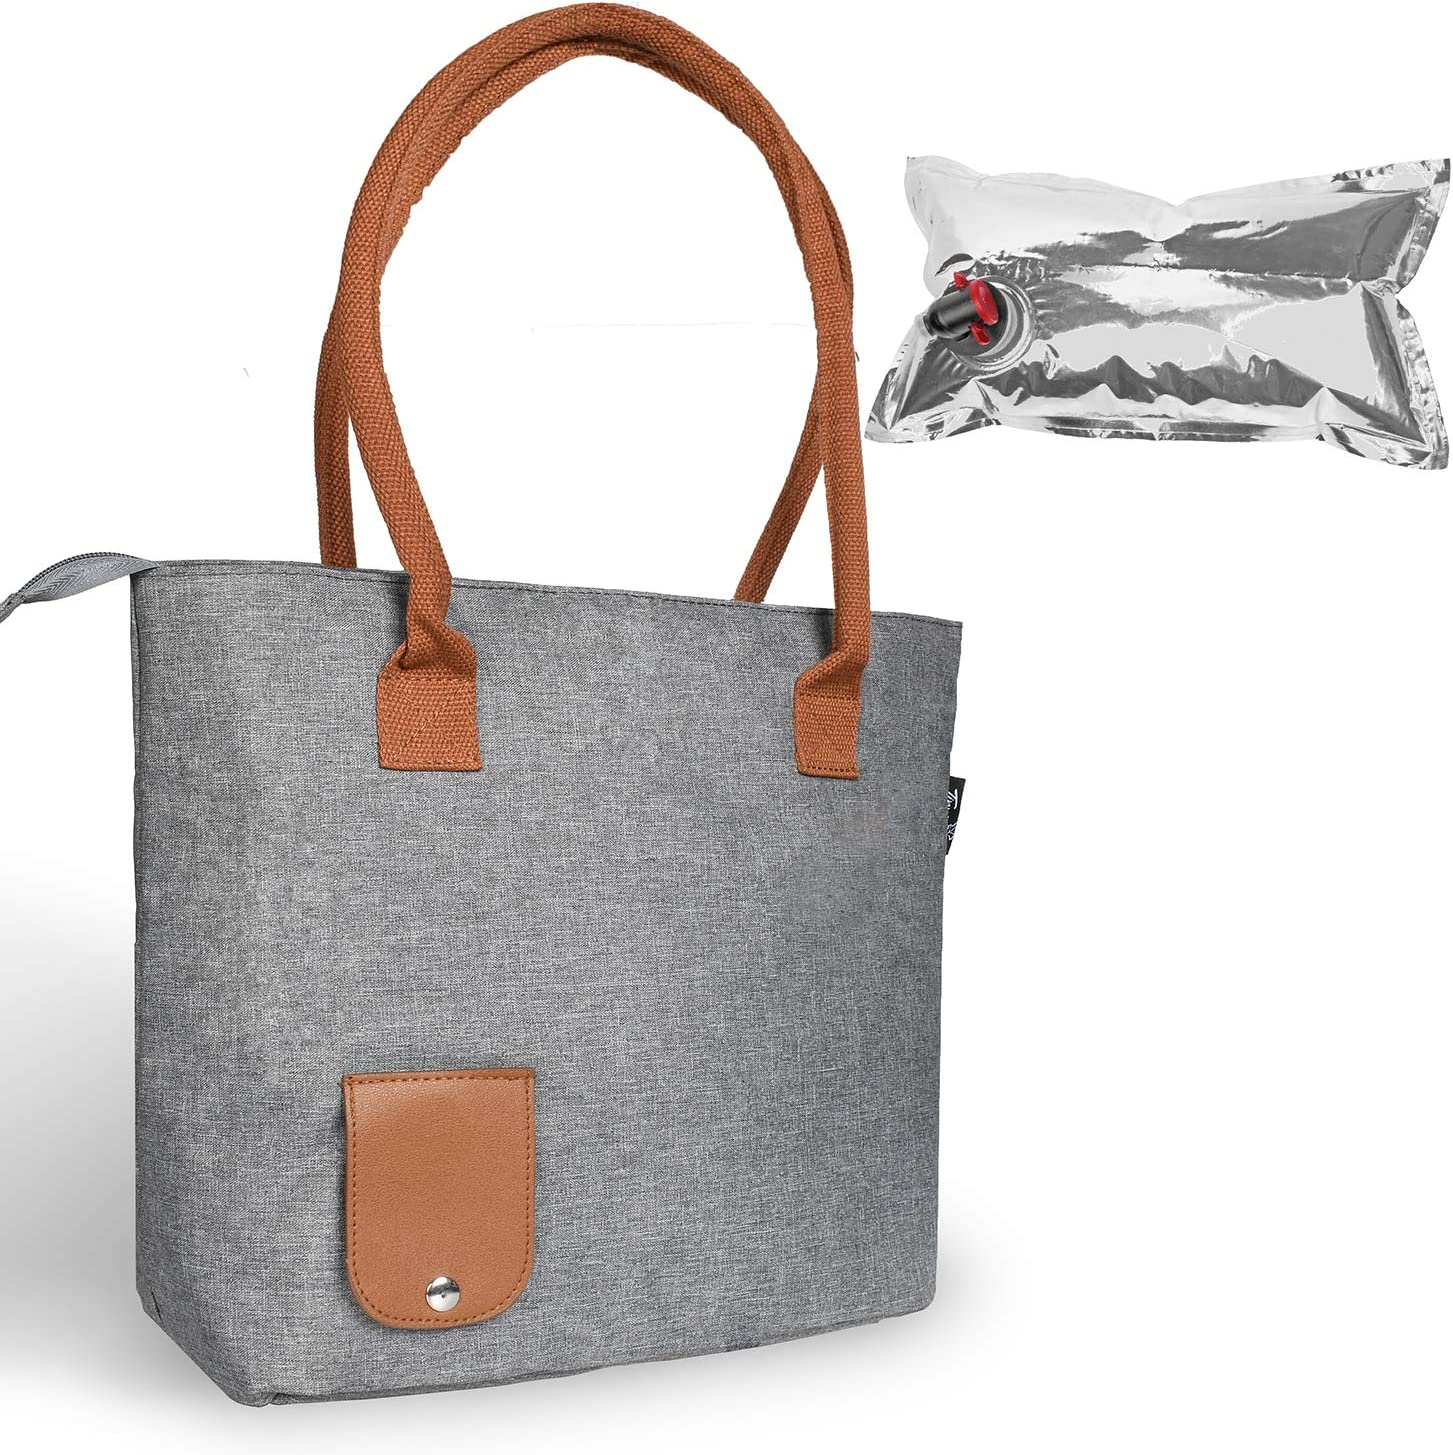 Wine Tote Bag with Hidden Dispenser, Insulated Large Wine Carrying Carrier Set with Wine Bladder, Perfect Wine Gift for Byob, Movie Theater, Concert, Sport Events, Pool & Beach, Grey